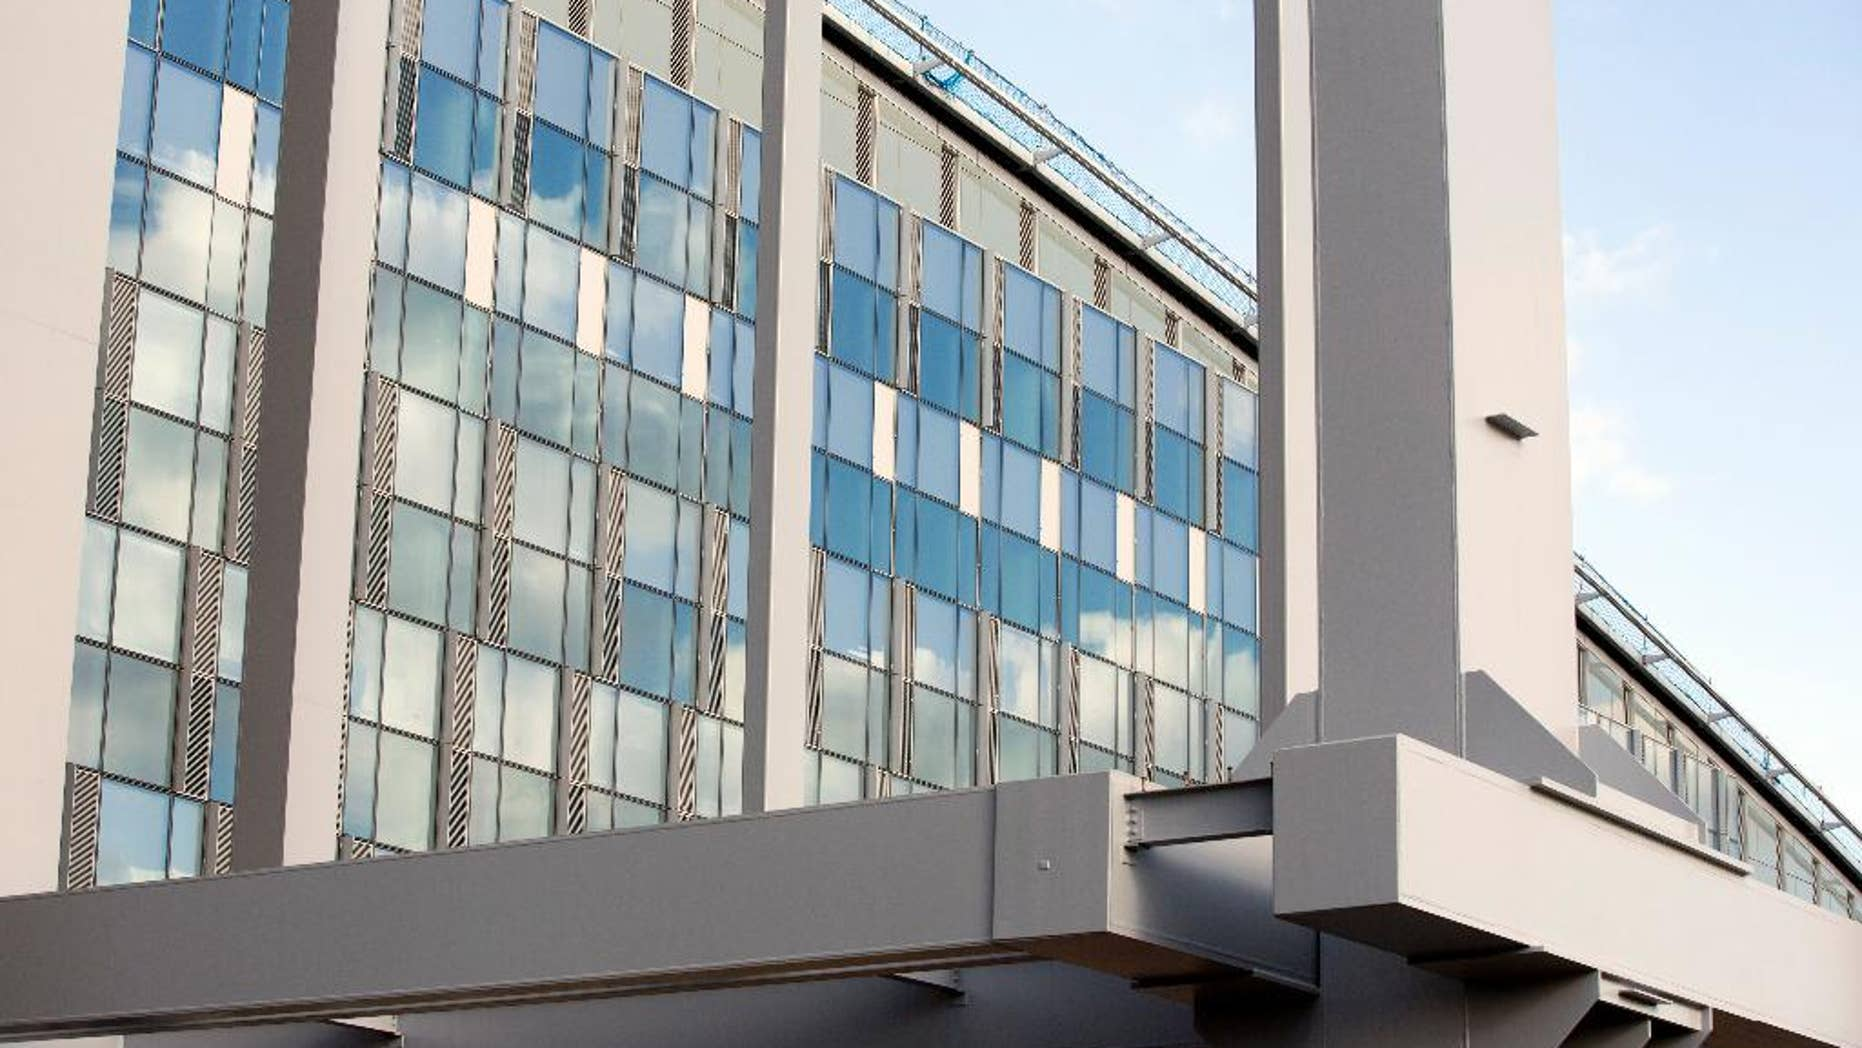 FILE - In this Nov. 13, 2013, file pool photo, steel beams and a glass wall on the exterior of the new NATO headquarters in Brussels. America's substantial support for NATO, both in money and military aid, has long been a source of frustration for U.S. leaders, and questioned by some as a throwback to the Cold War era.(AP Photo/Virginia Mayo, Pool, File)